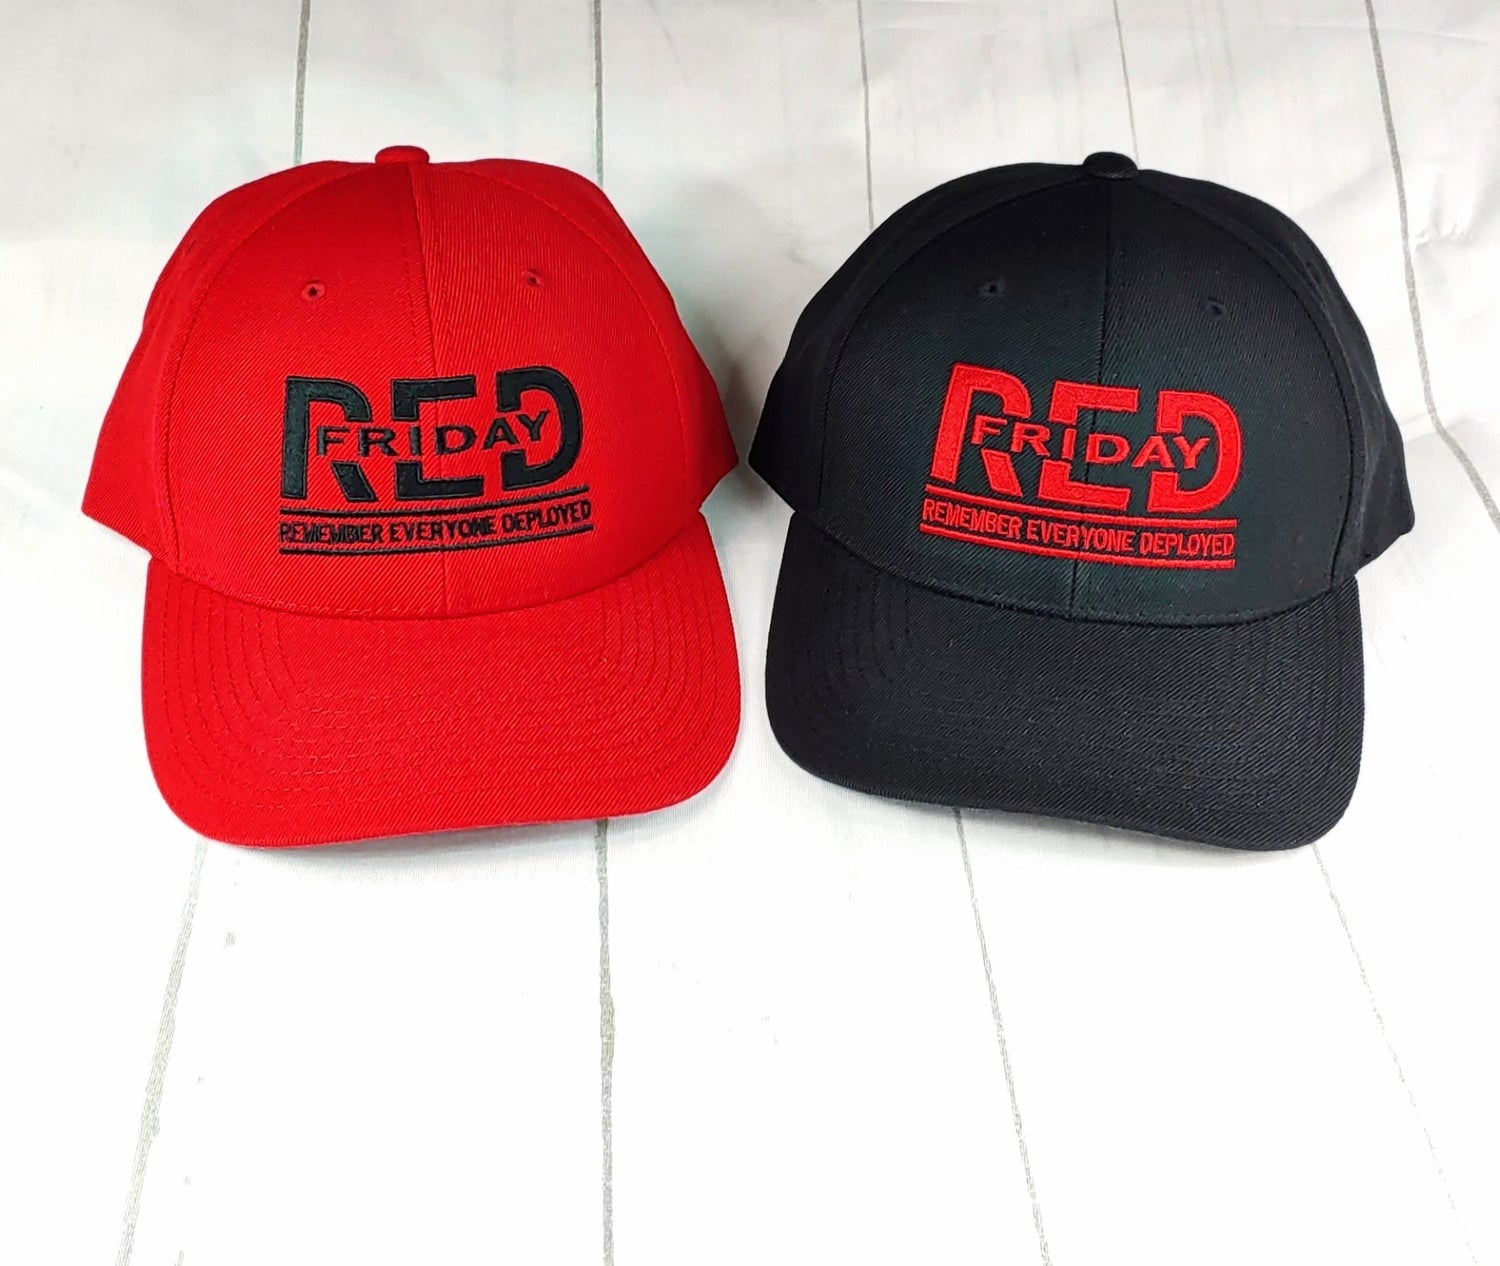 R.E.D. Embroidered Snapback